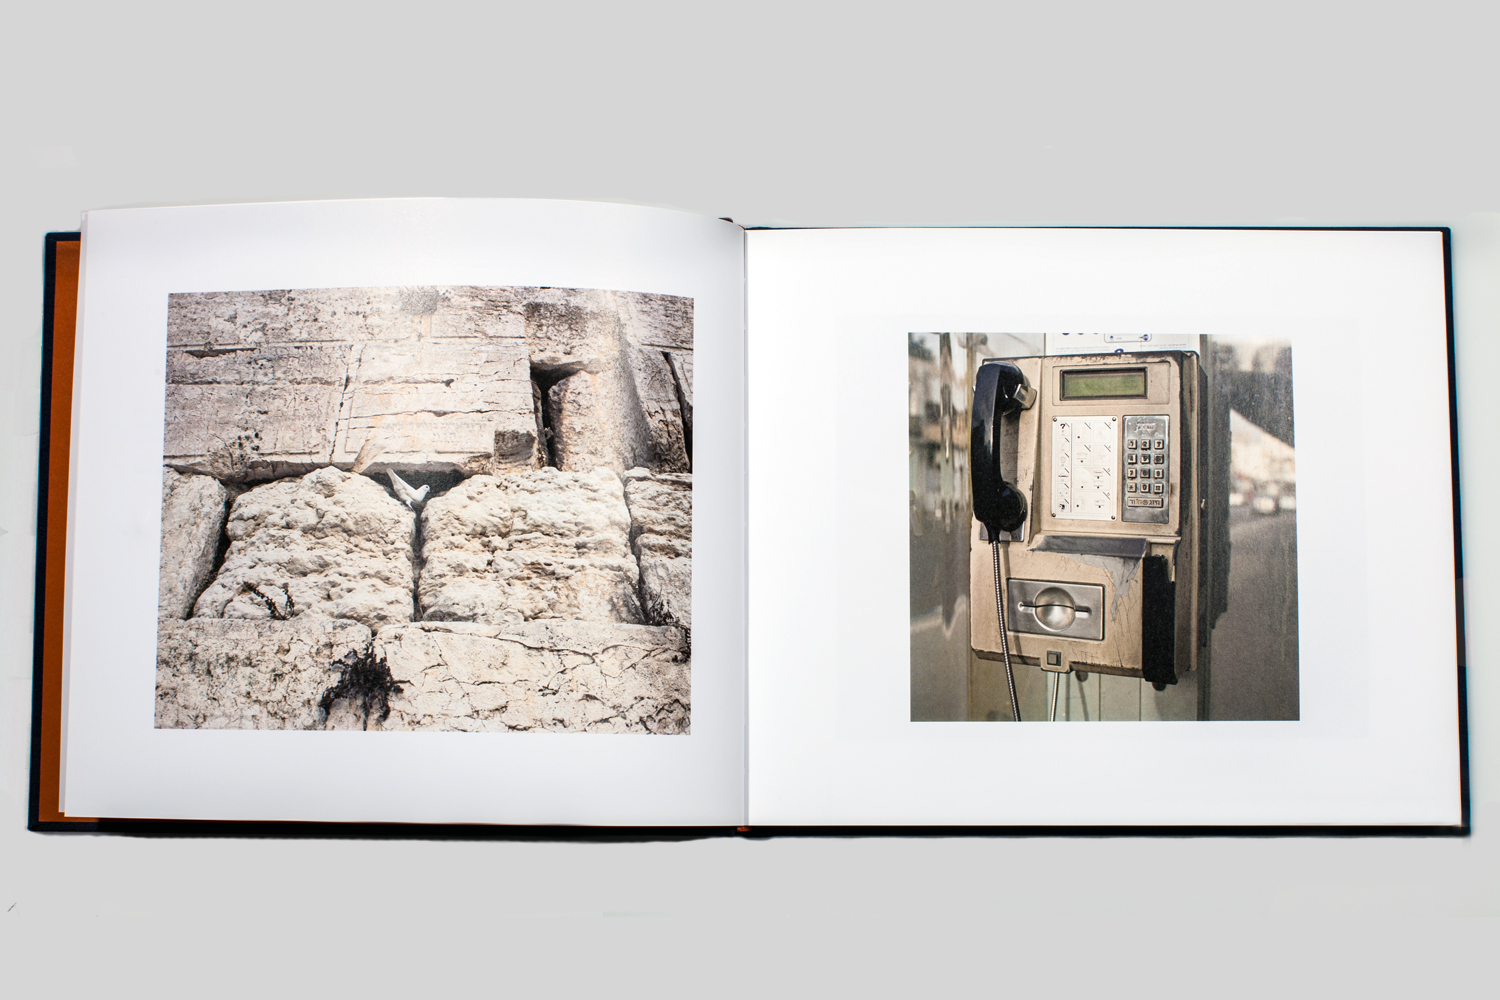 With the never-ending tide of media bombast coming out of Israel and the West Bank, what a relief to spend time with this understated book and quietly reflect on migration, exile and the longing for connection.                                                               —Alec Soth, photographer and publisher of Little Brown Mushroom